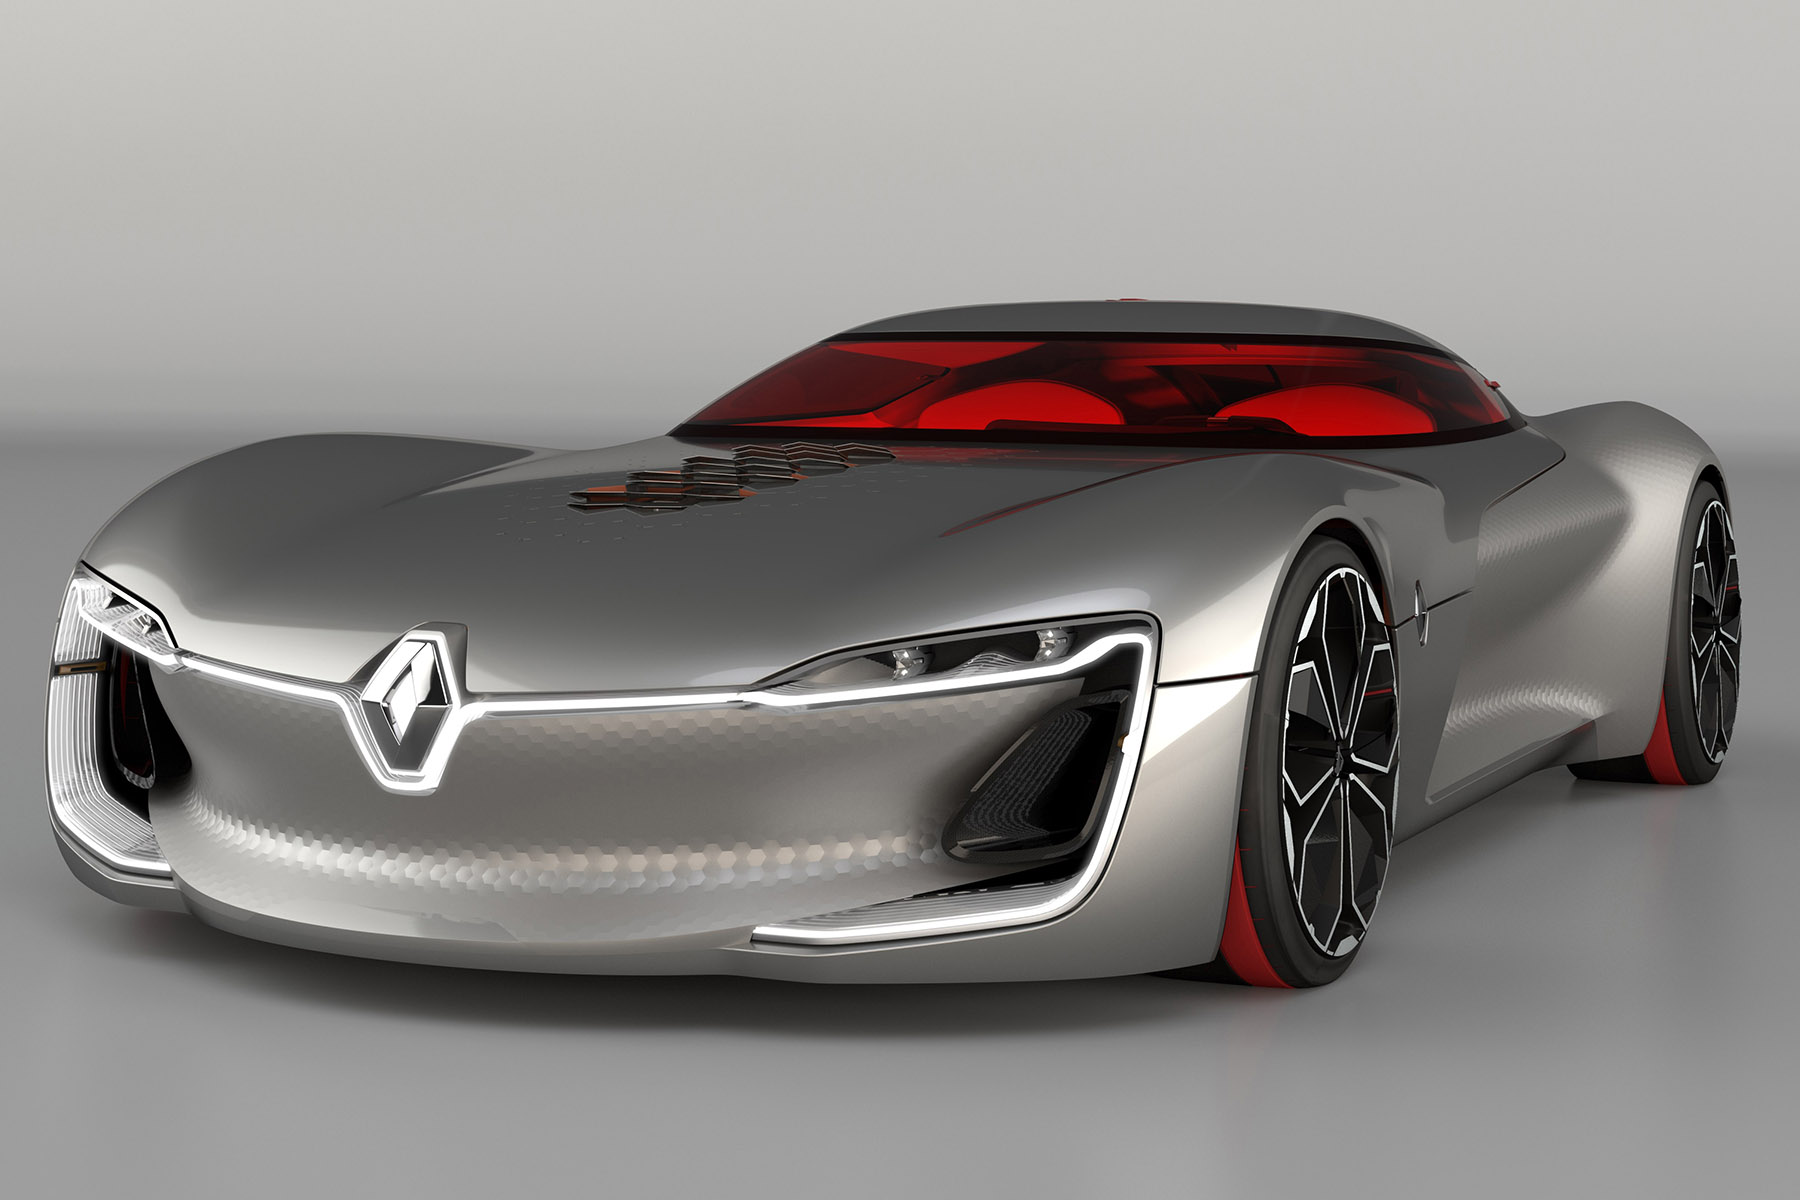 CONCEPT COLLECTIONS: RENAULT TREZOR